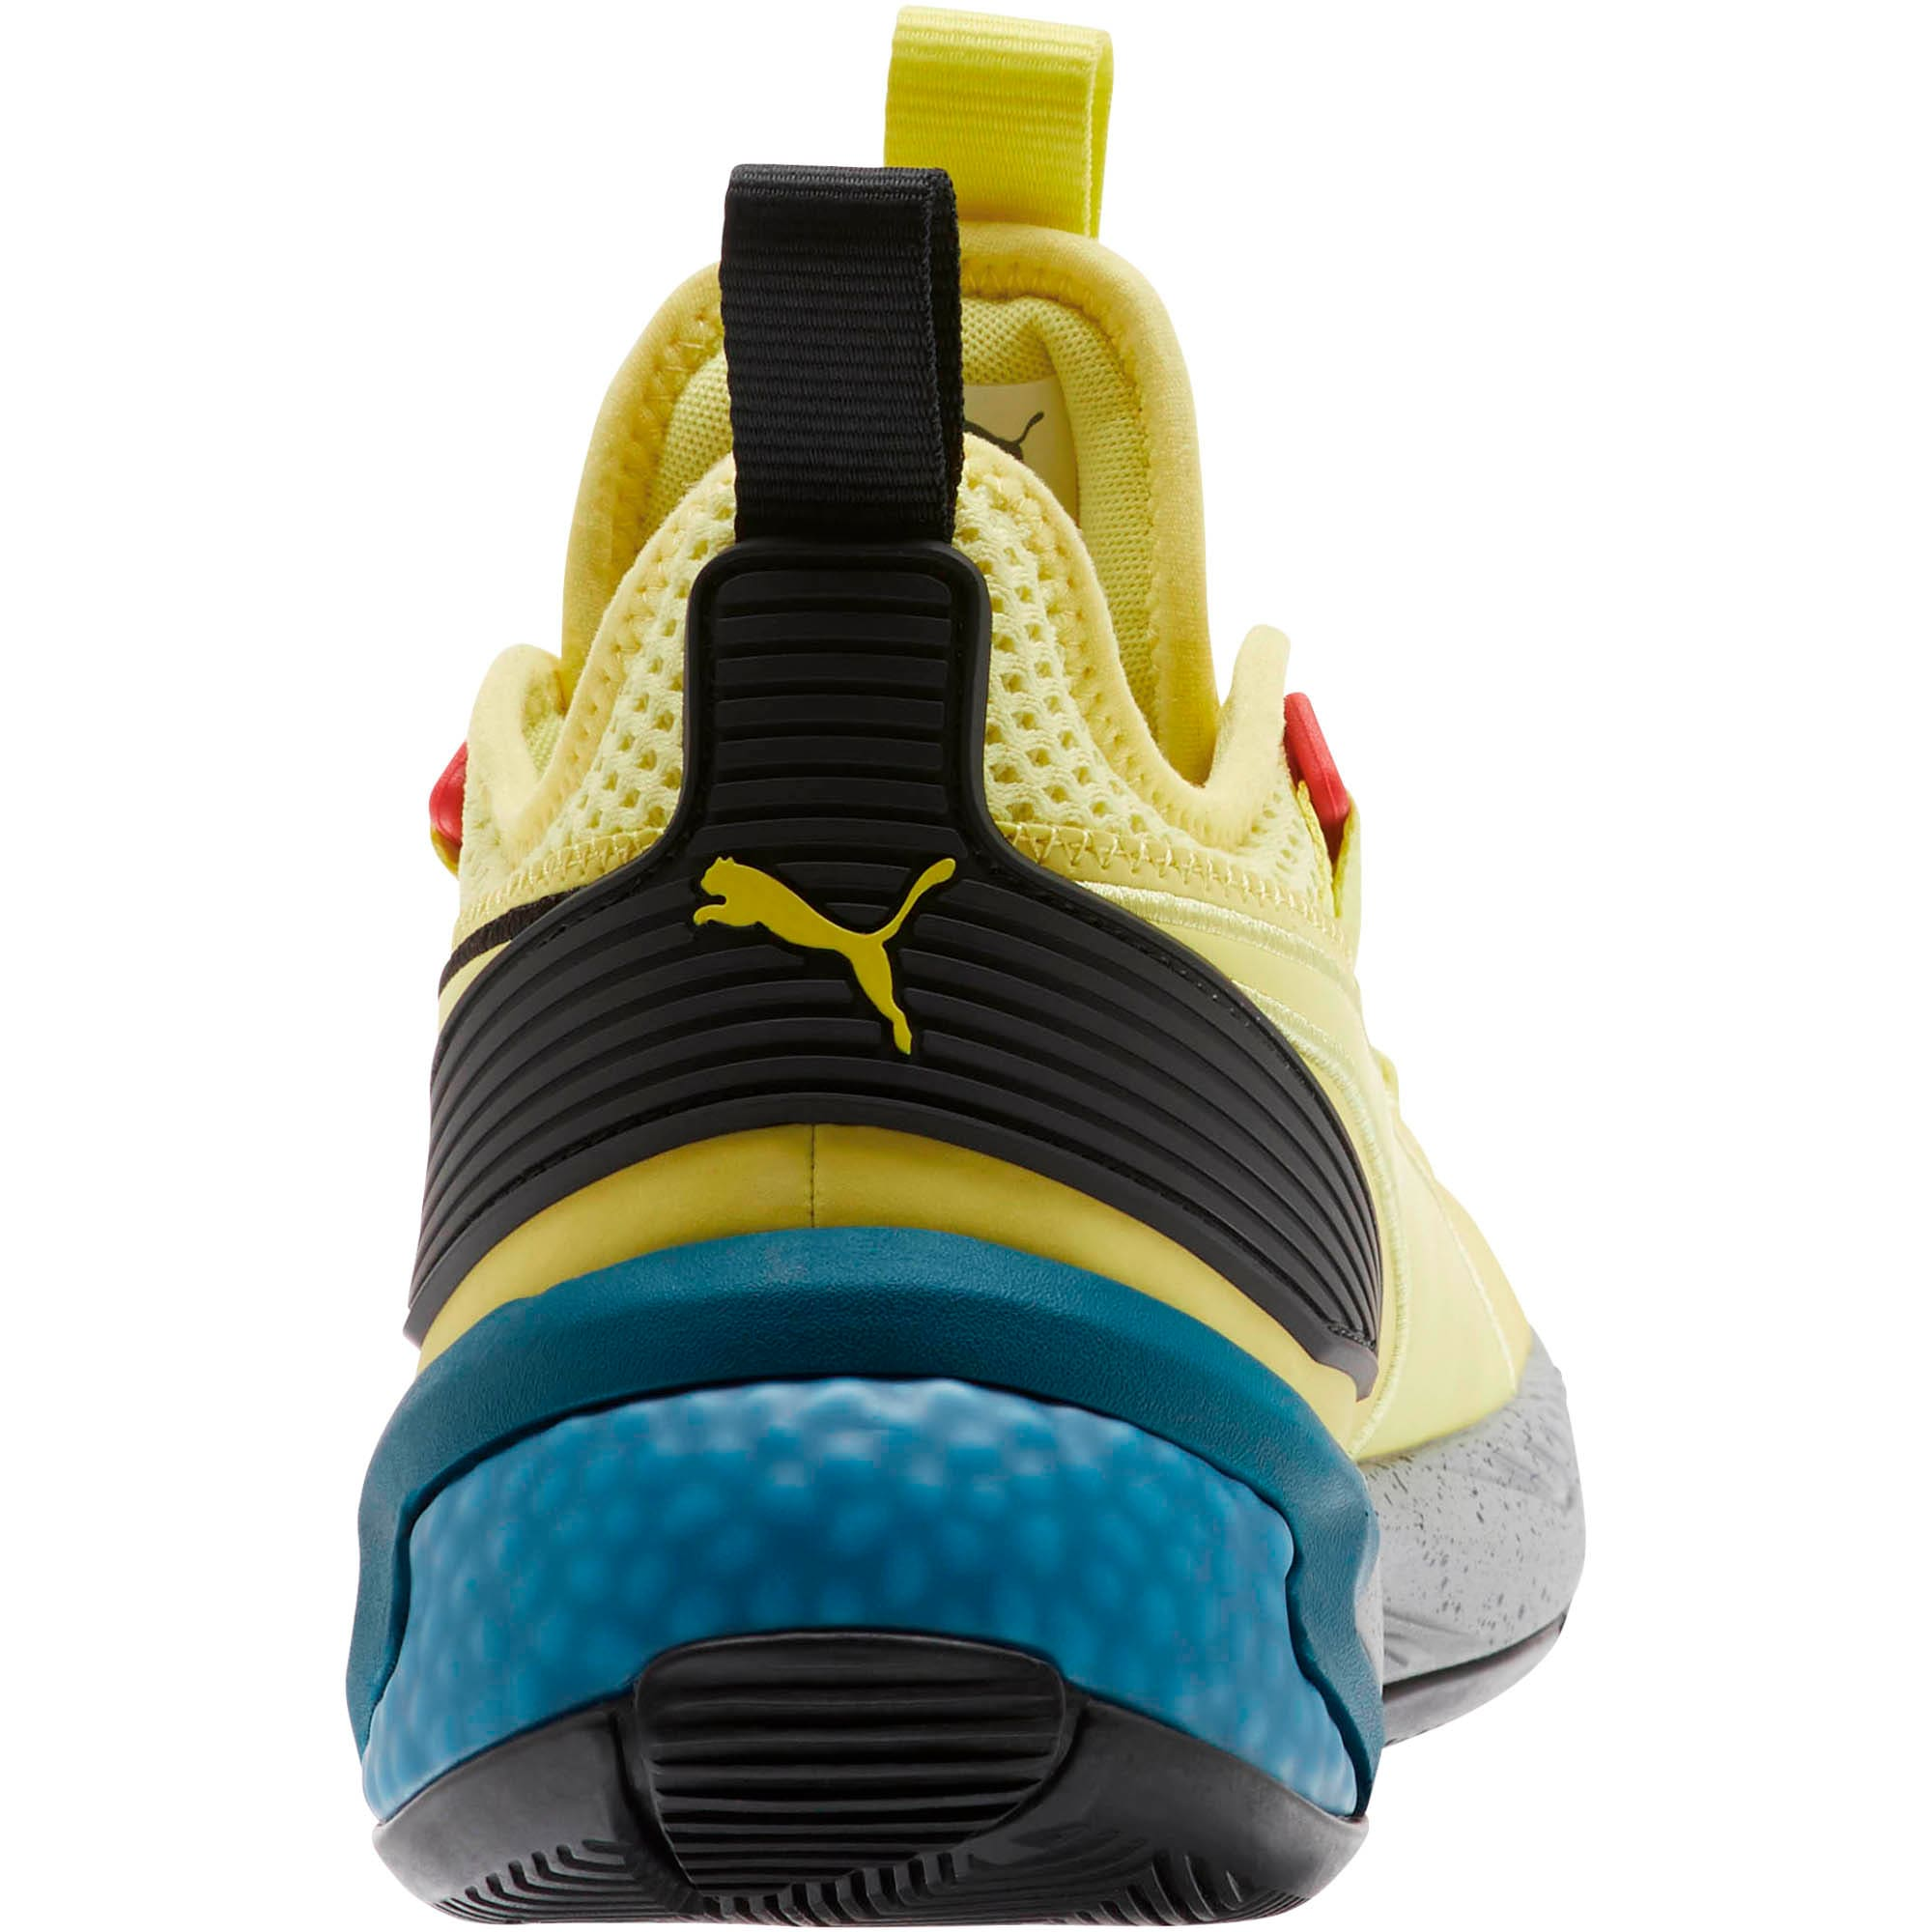 Thumbnail 3 van Uproar Spectra basketbalschoenen, Limelight-zwart-wit, medium